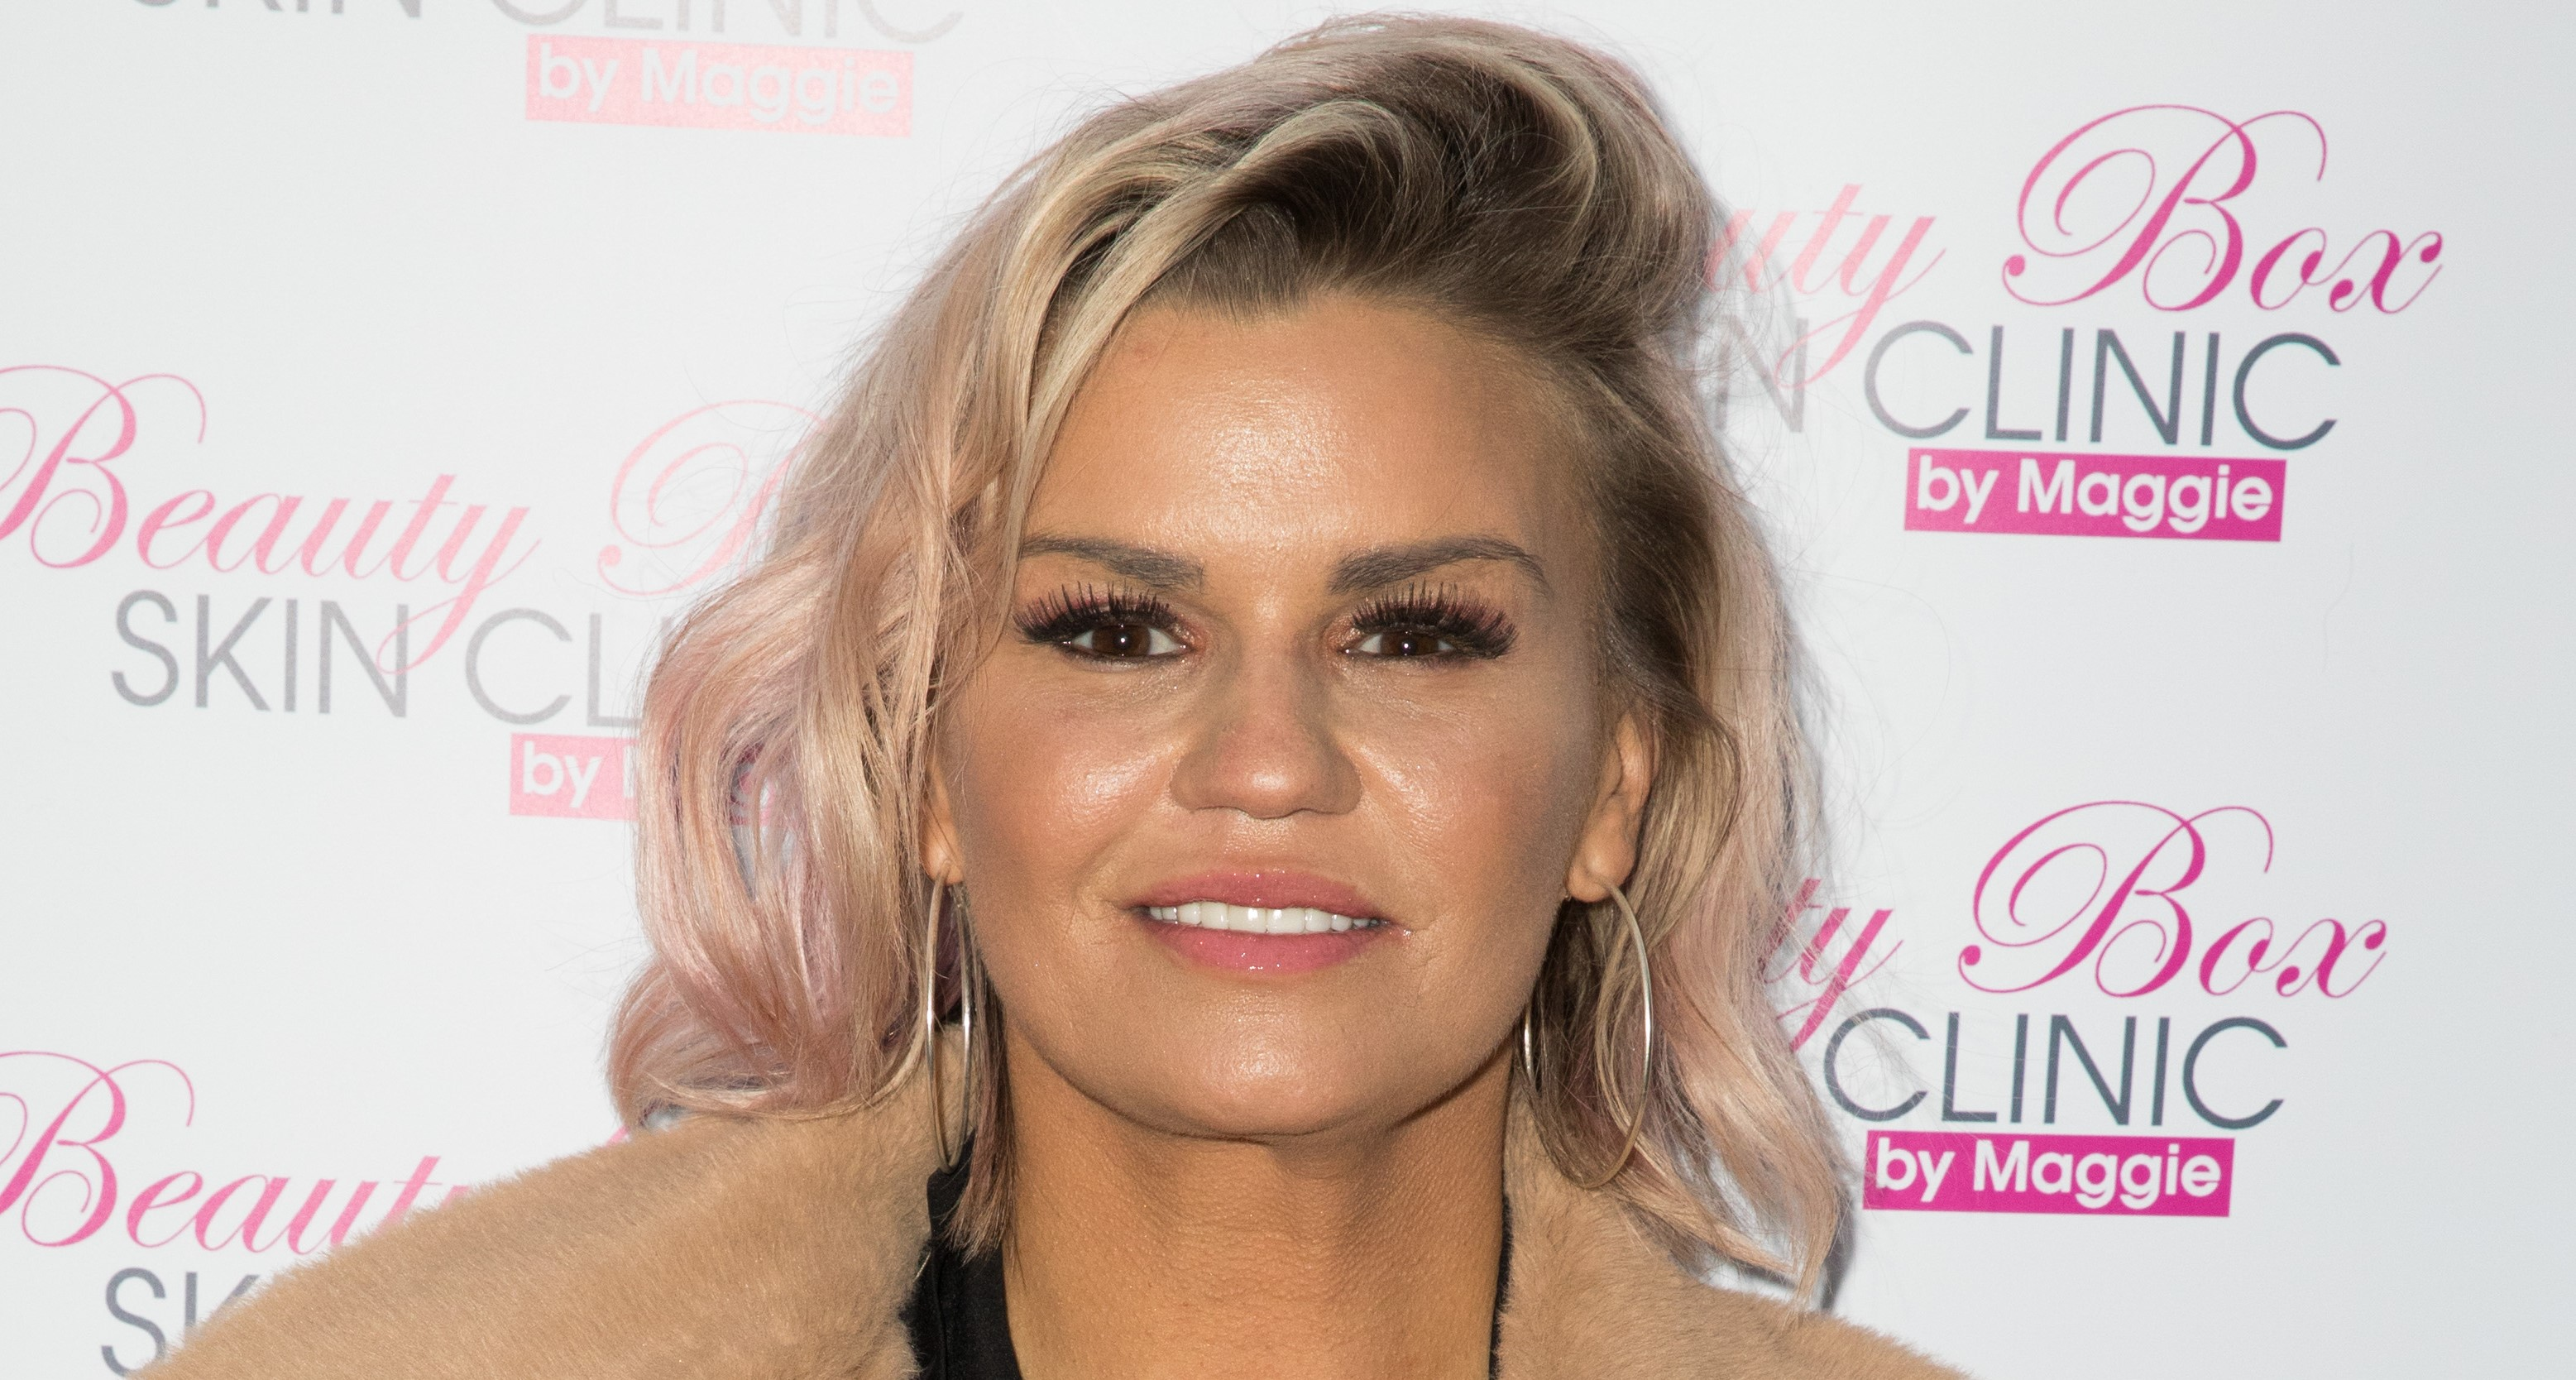 Kerry Katona shares loved-up photos as boyfriend whisks her away on romantic holiday